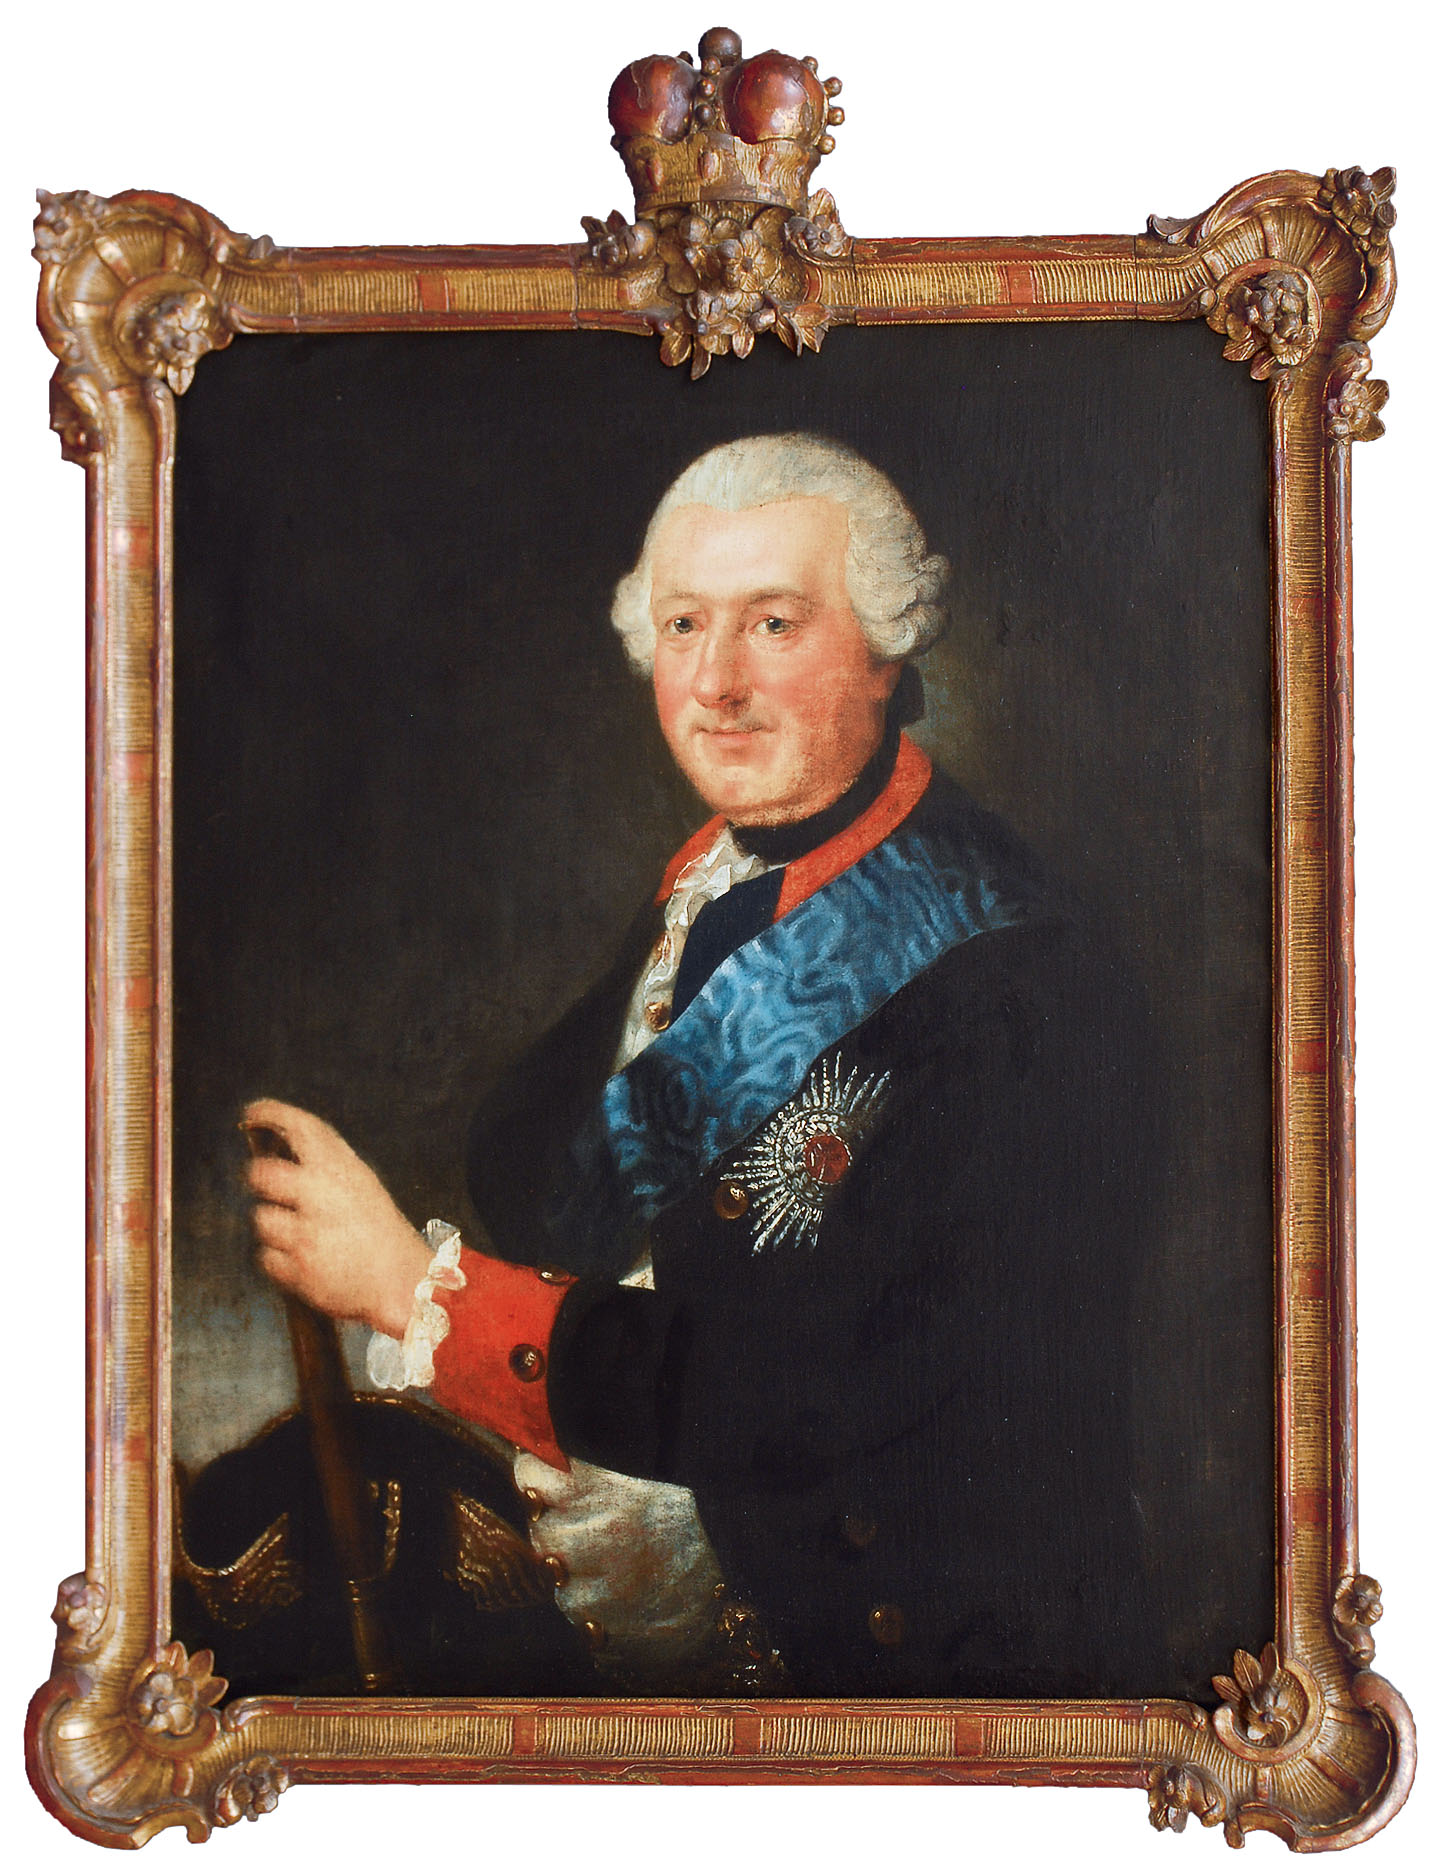 Portrait of a Prussian nobleman